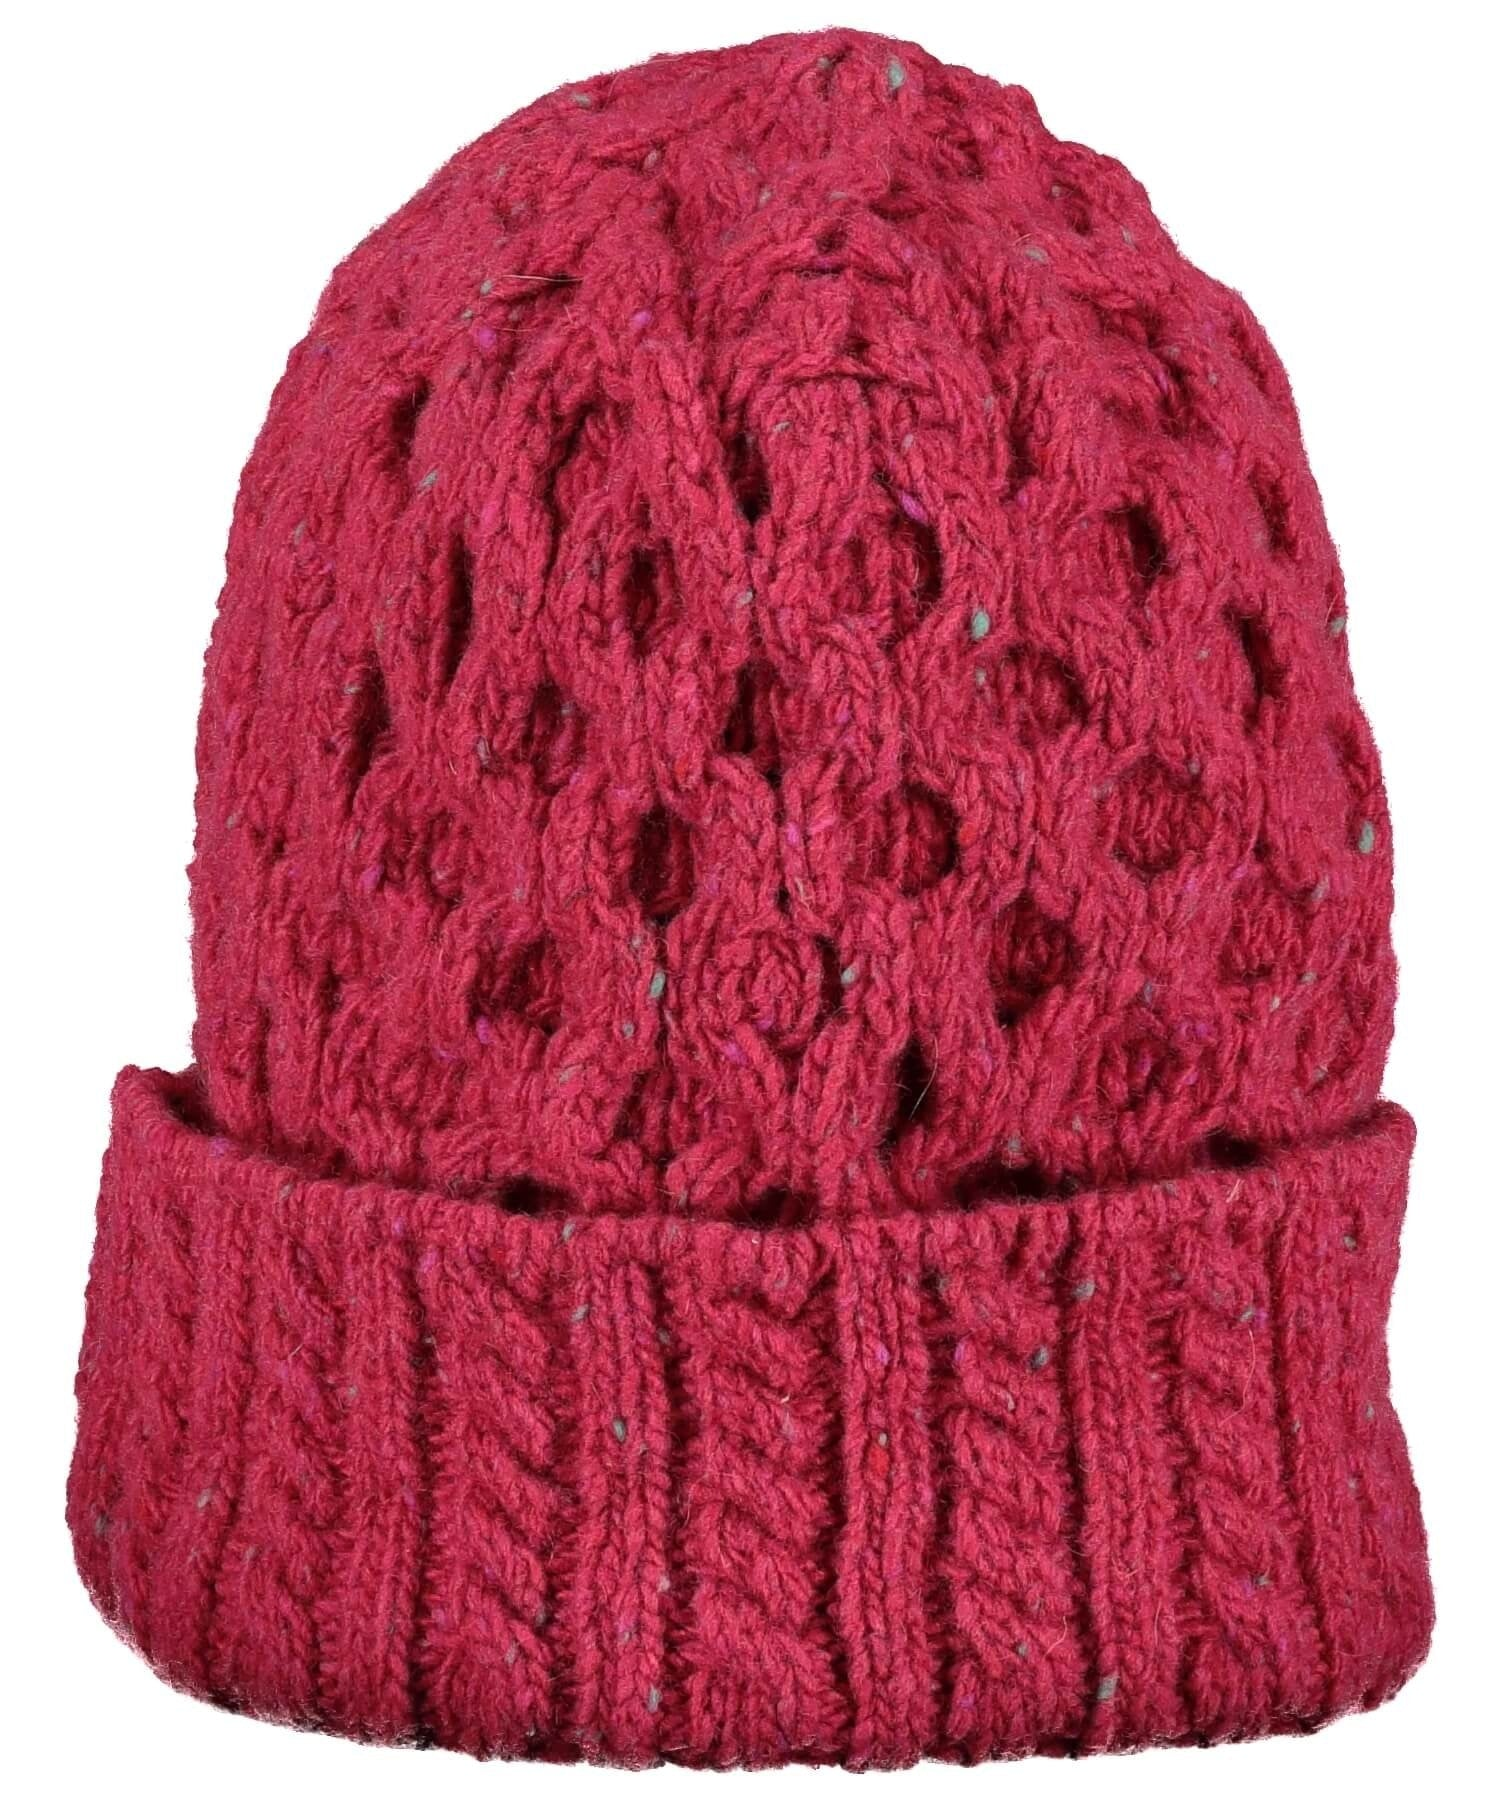 Luxe Aran Hat - Bramble Berry - [Irelands Eye] - Ladies Hats & Headbands - Irish Gifts